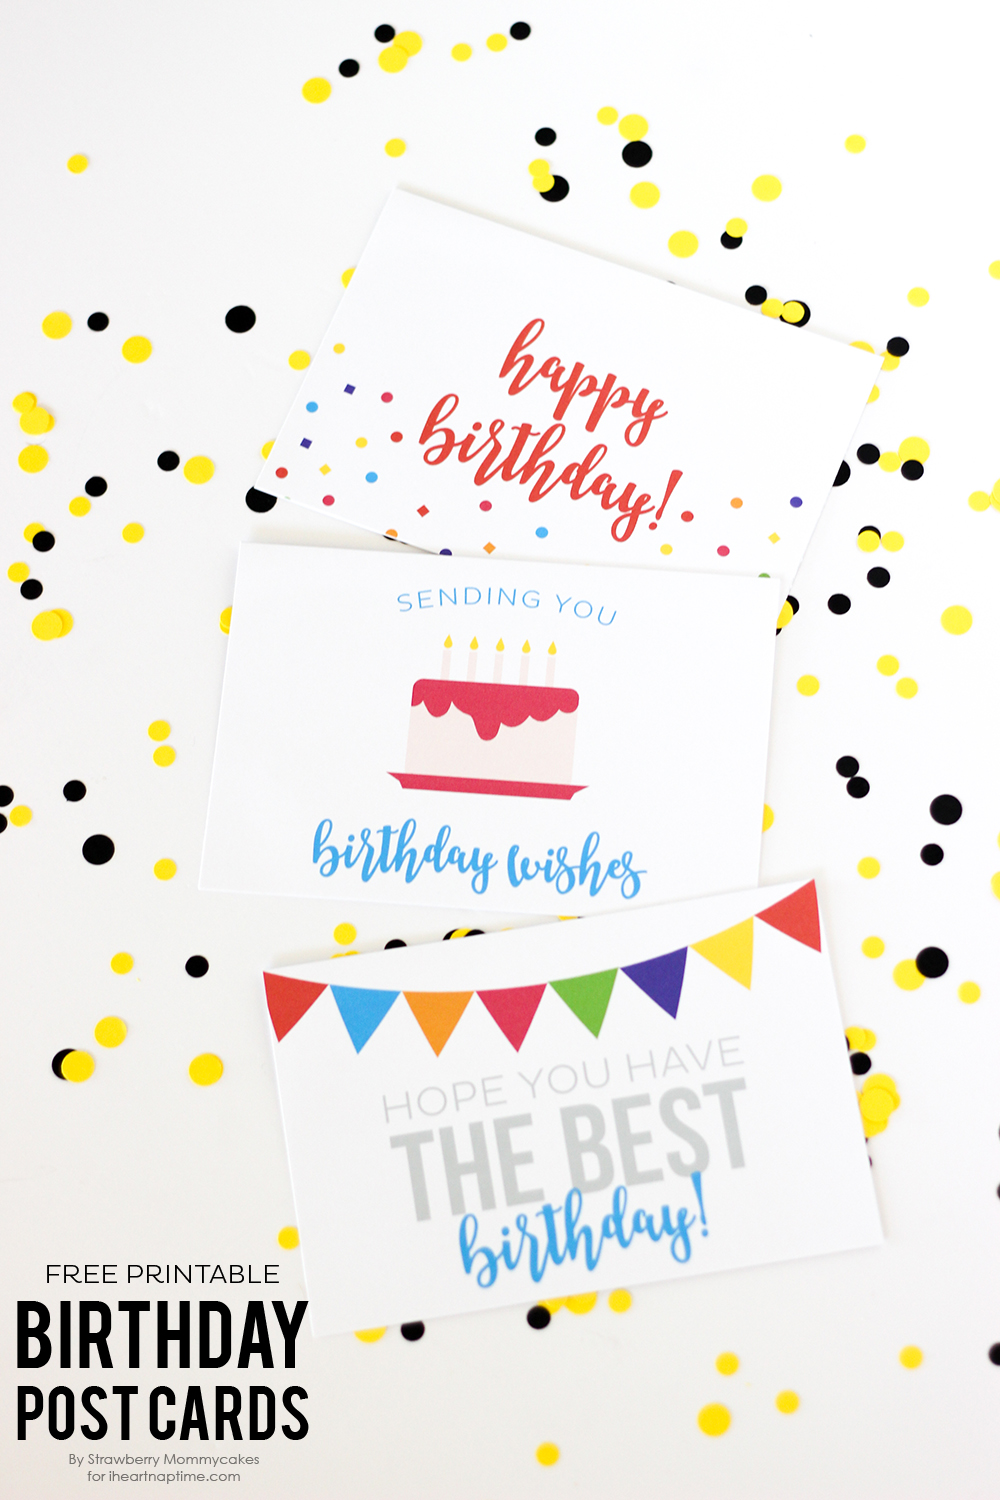 free printable cards fun gift ideas with printable tags and many more great birthday ideas